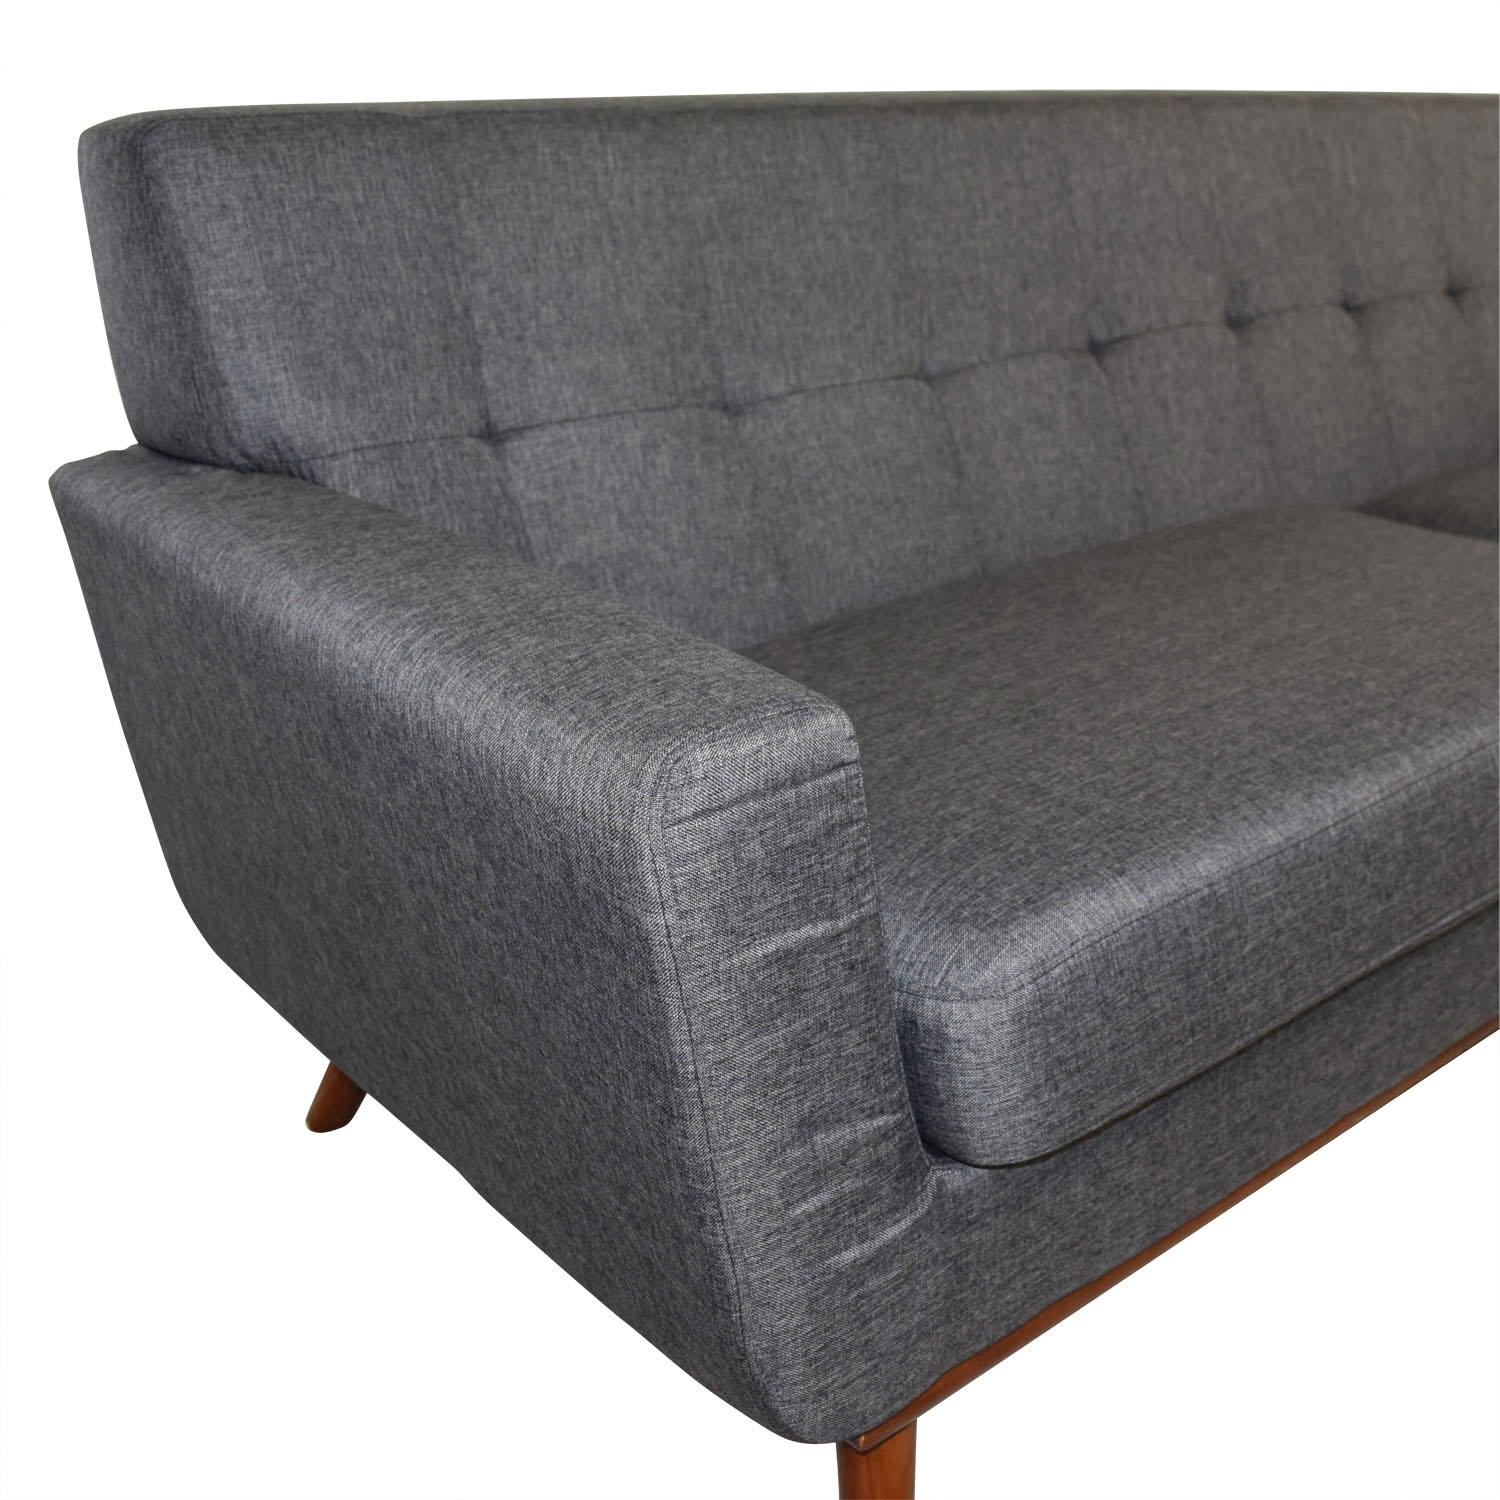 charcoal gray tufted sofa dry cleaning cushions 51 off inmod grey lars sofas